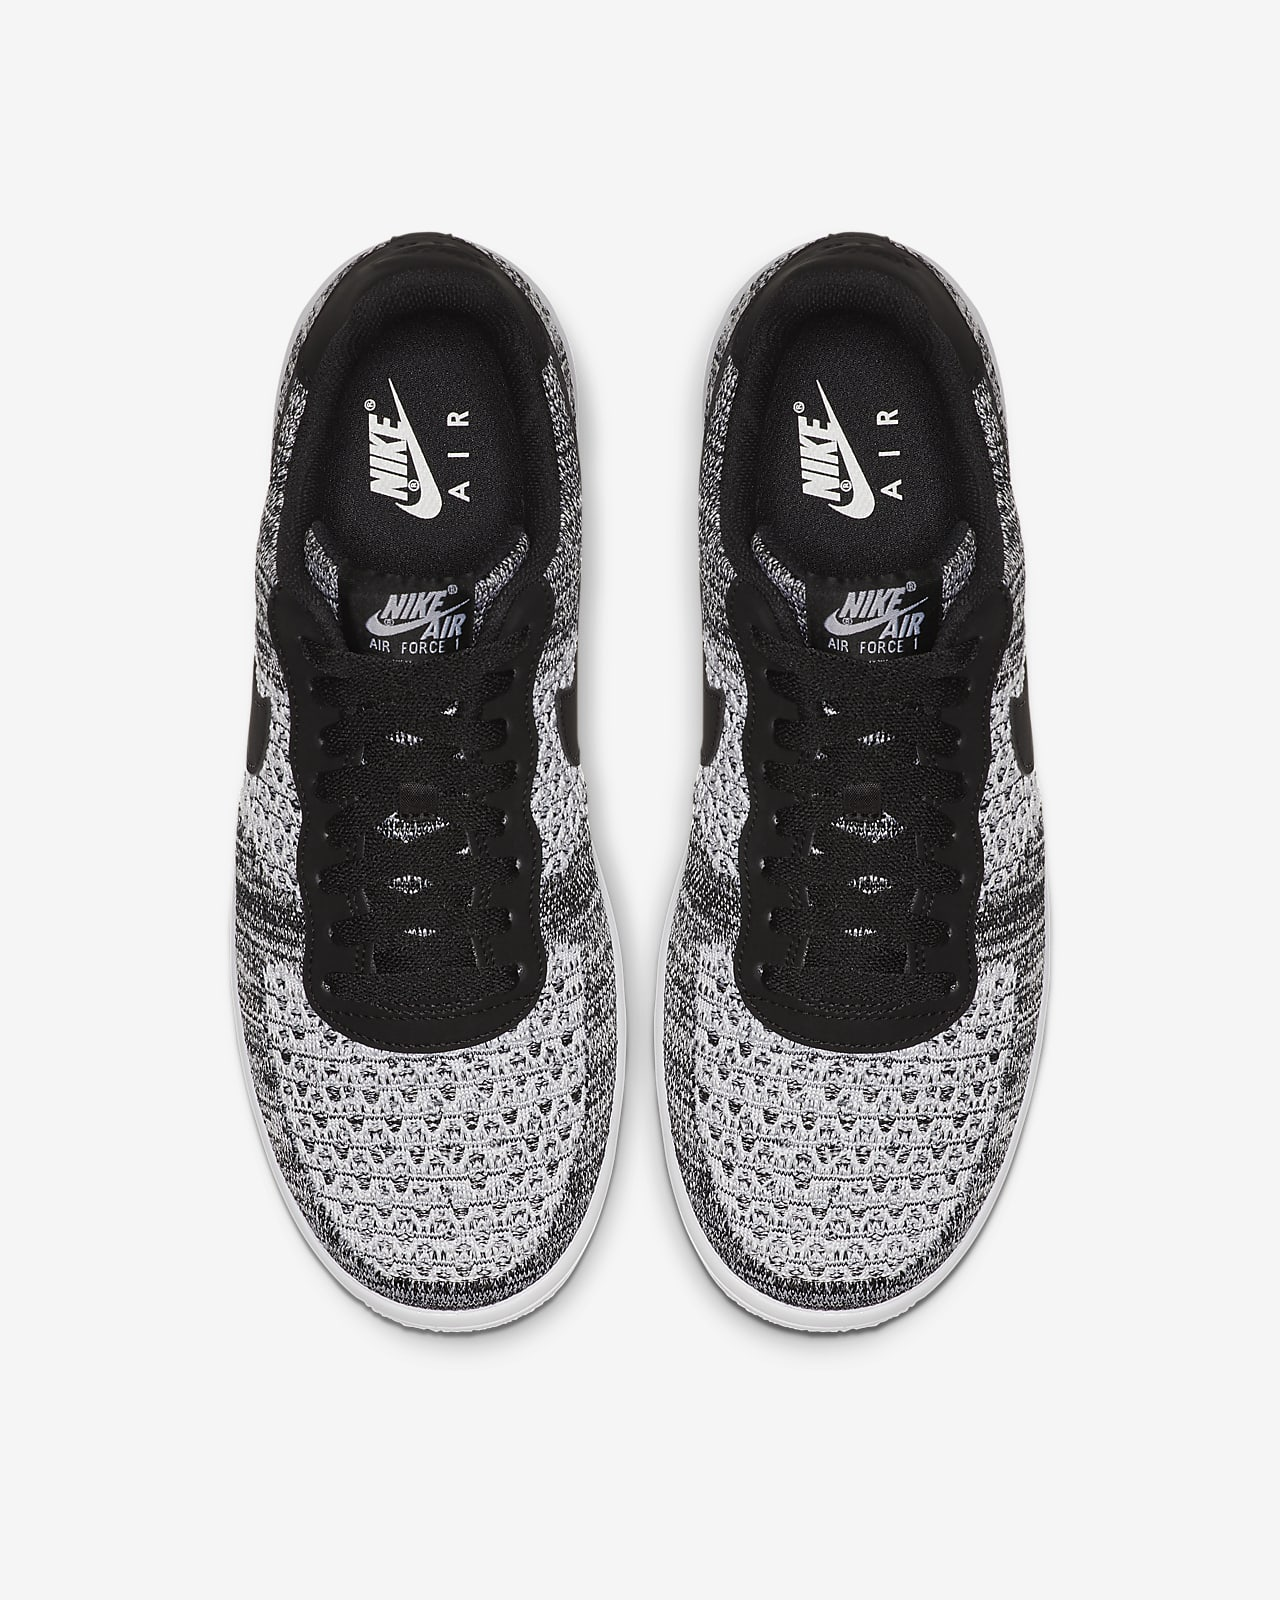 Nike Air Force 1 Flyknit 2.0 Shoes